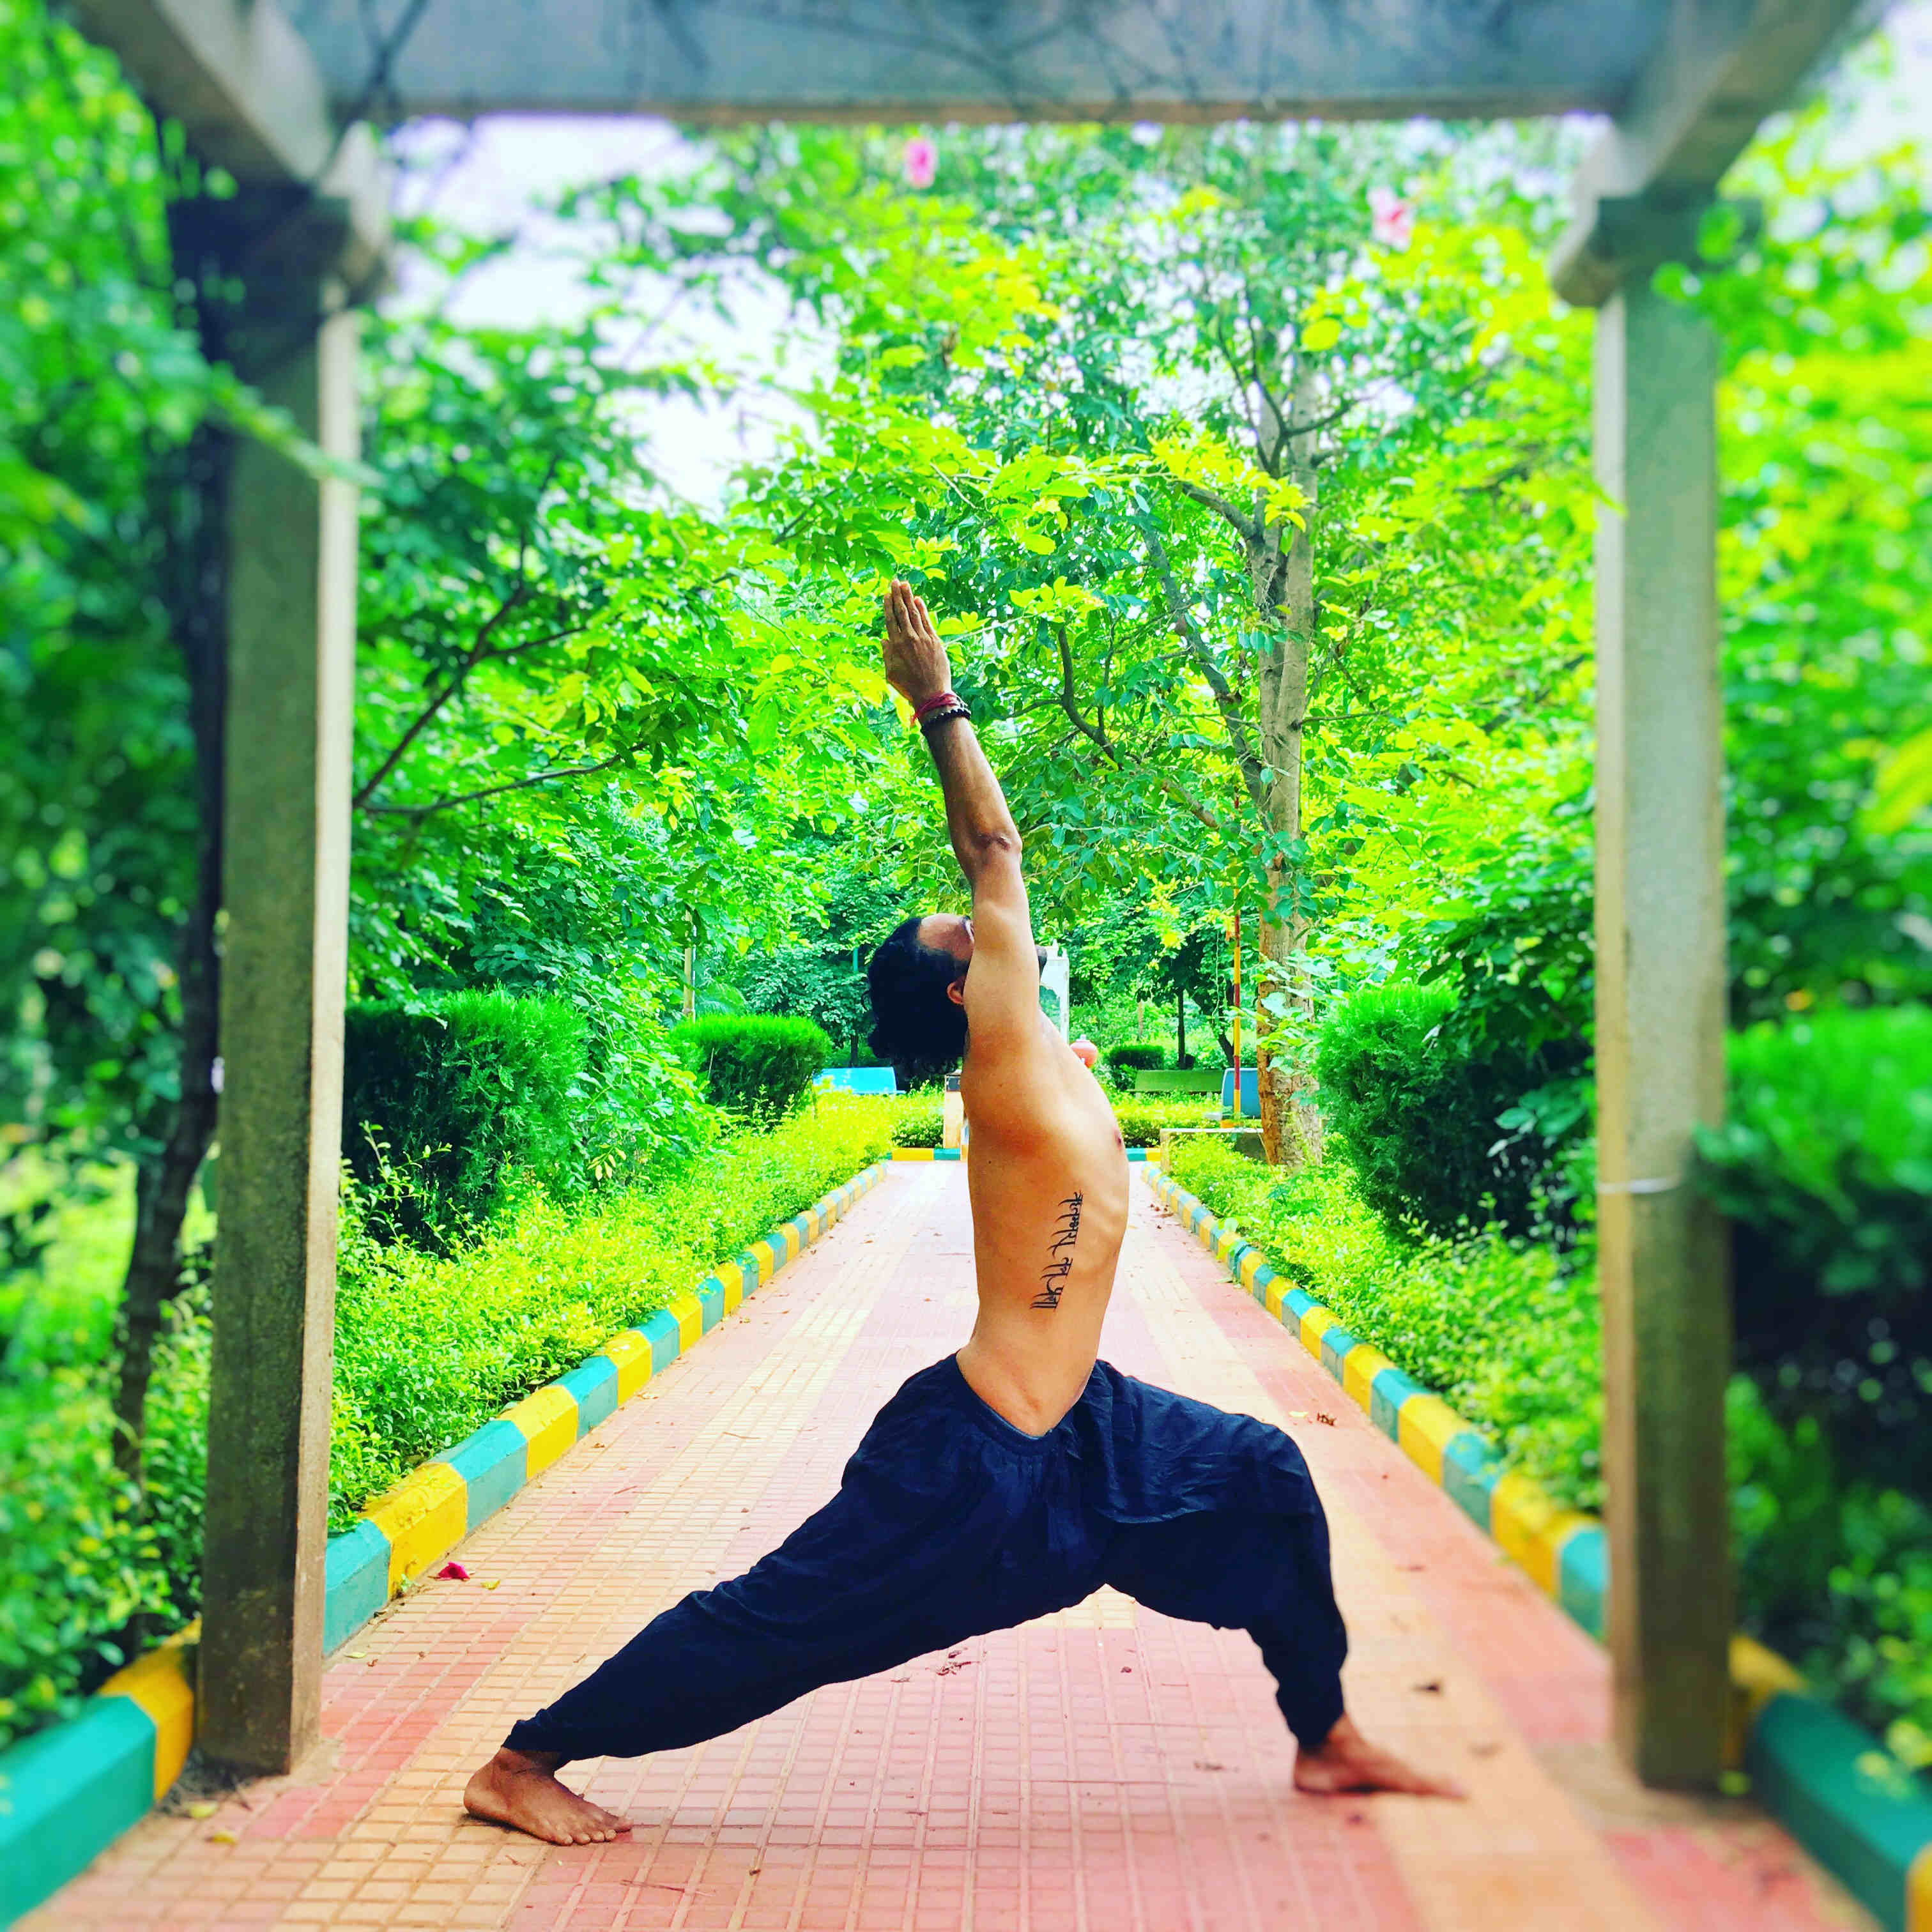 Lower back pain - Why it hits so many and how yoga can bring relief